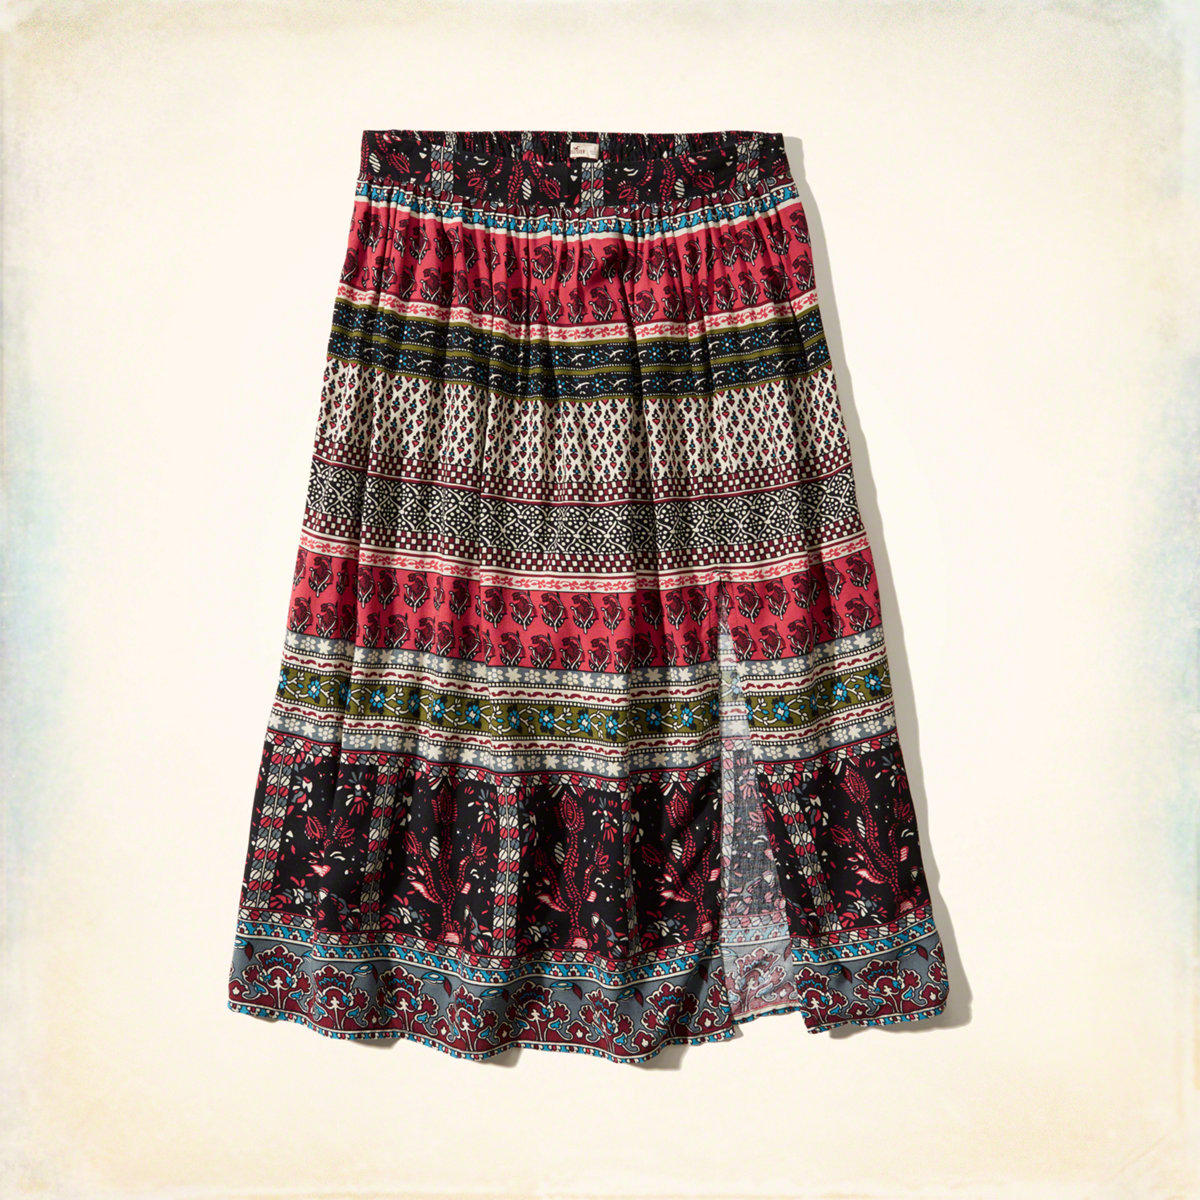 pattern slit midi skirt from hollister co